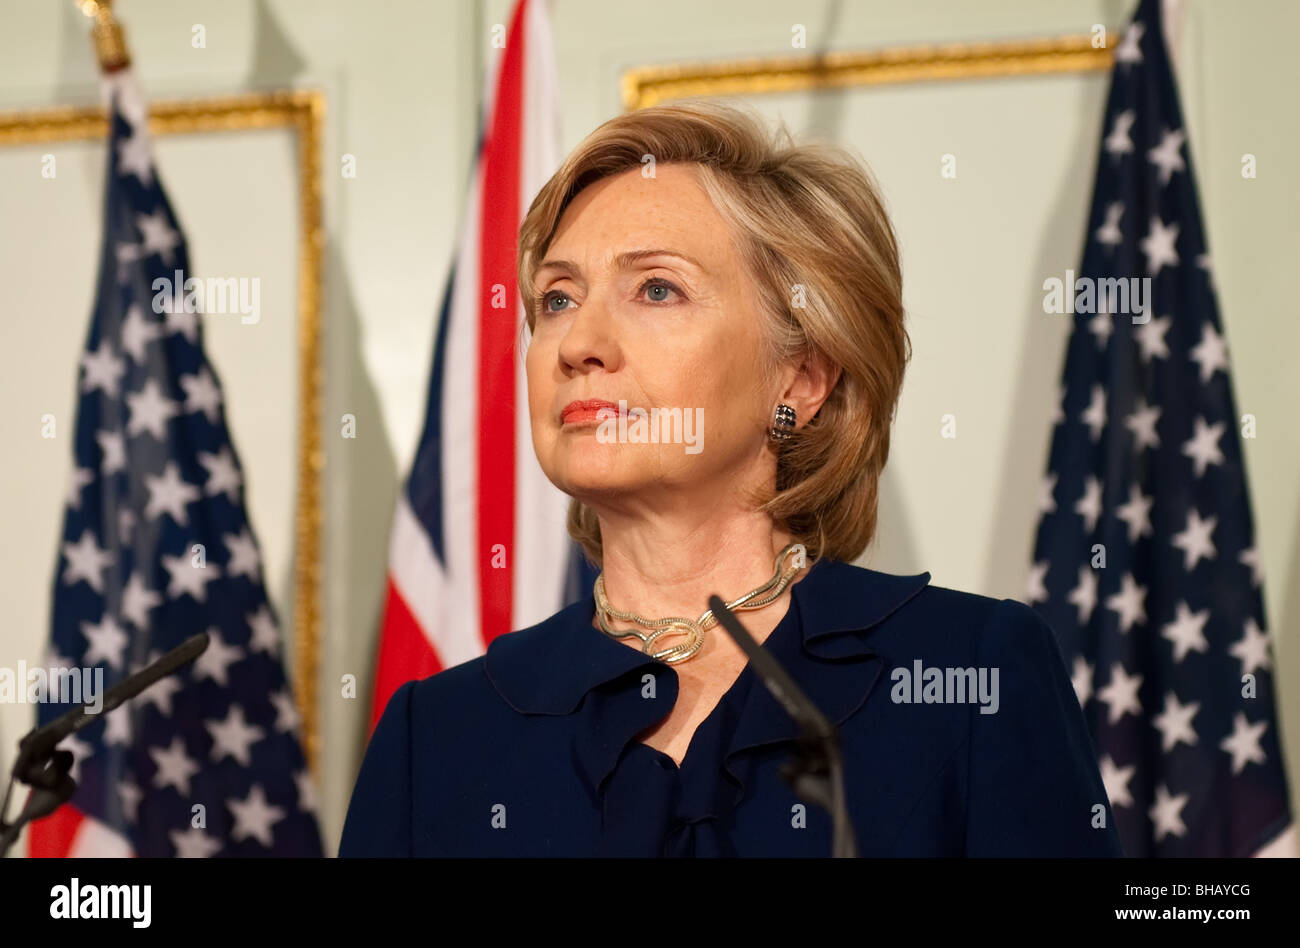 U.S. Secretary Of State Hillary Clinton speaks at a press conference Stock Photo